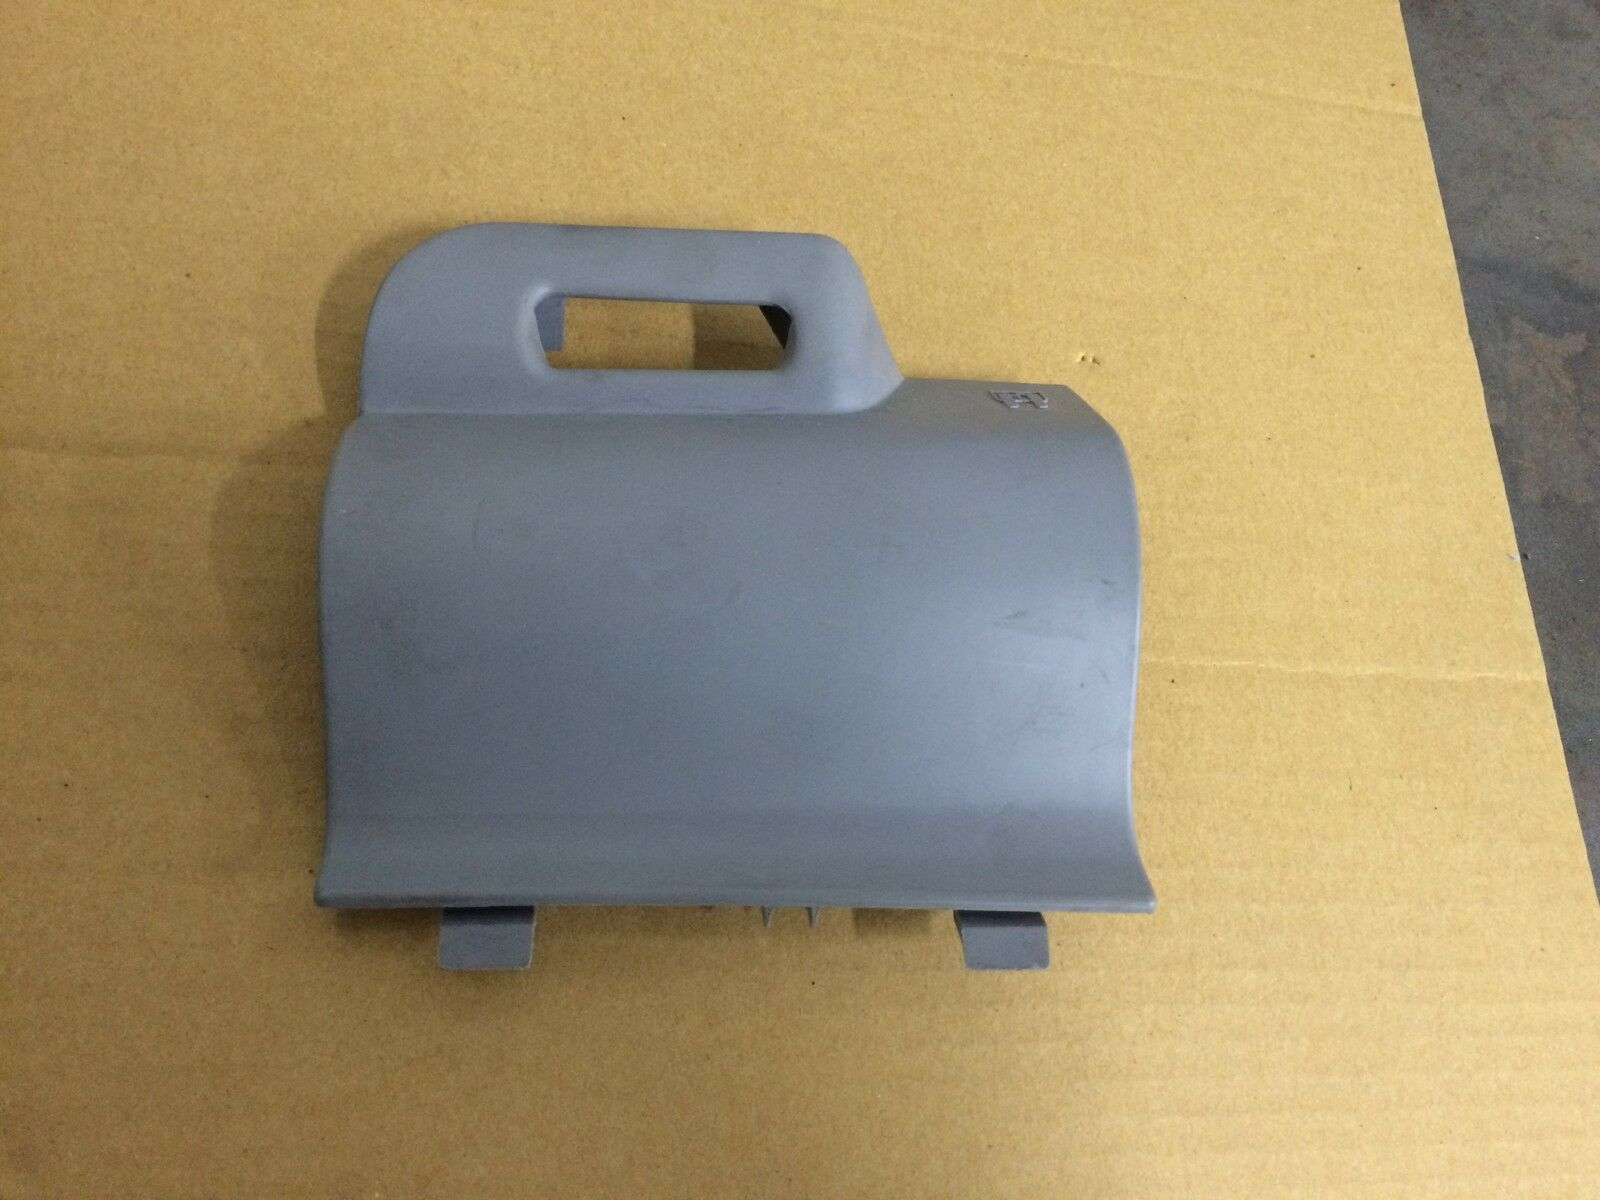 Citroen C3 Pluriel Fuse Box Panel Cover Lid Flap Interior Inside Glove Box  1 of 1Only 1 available ...